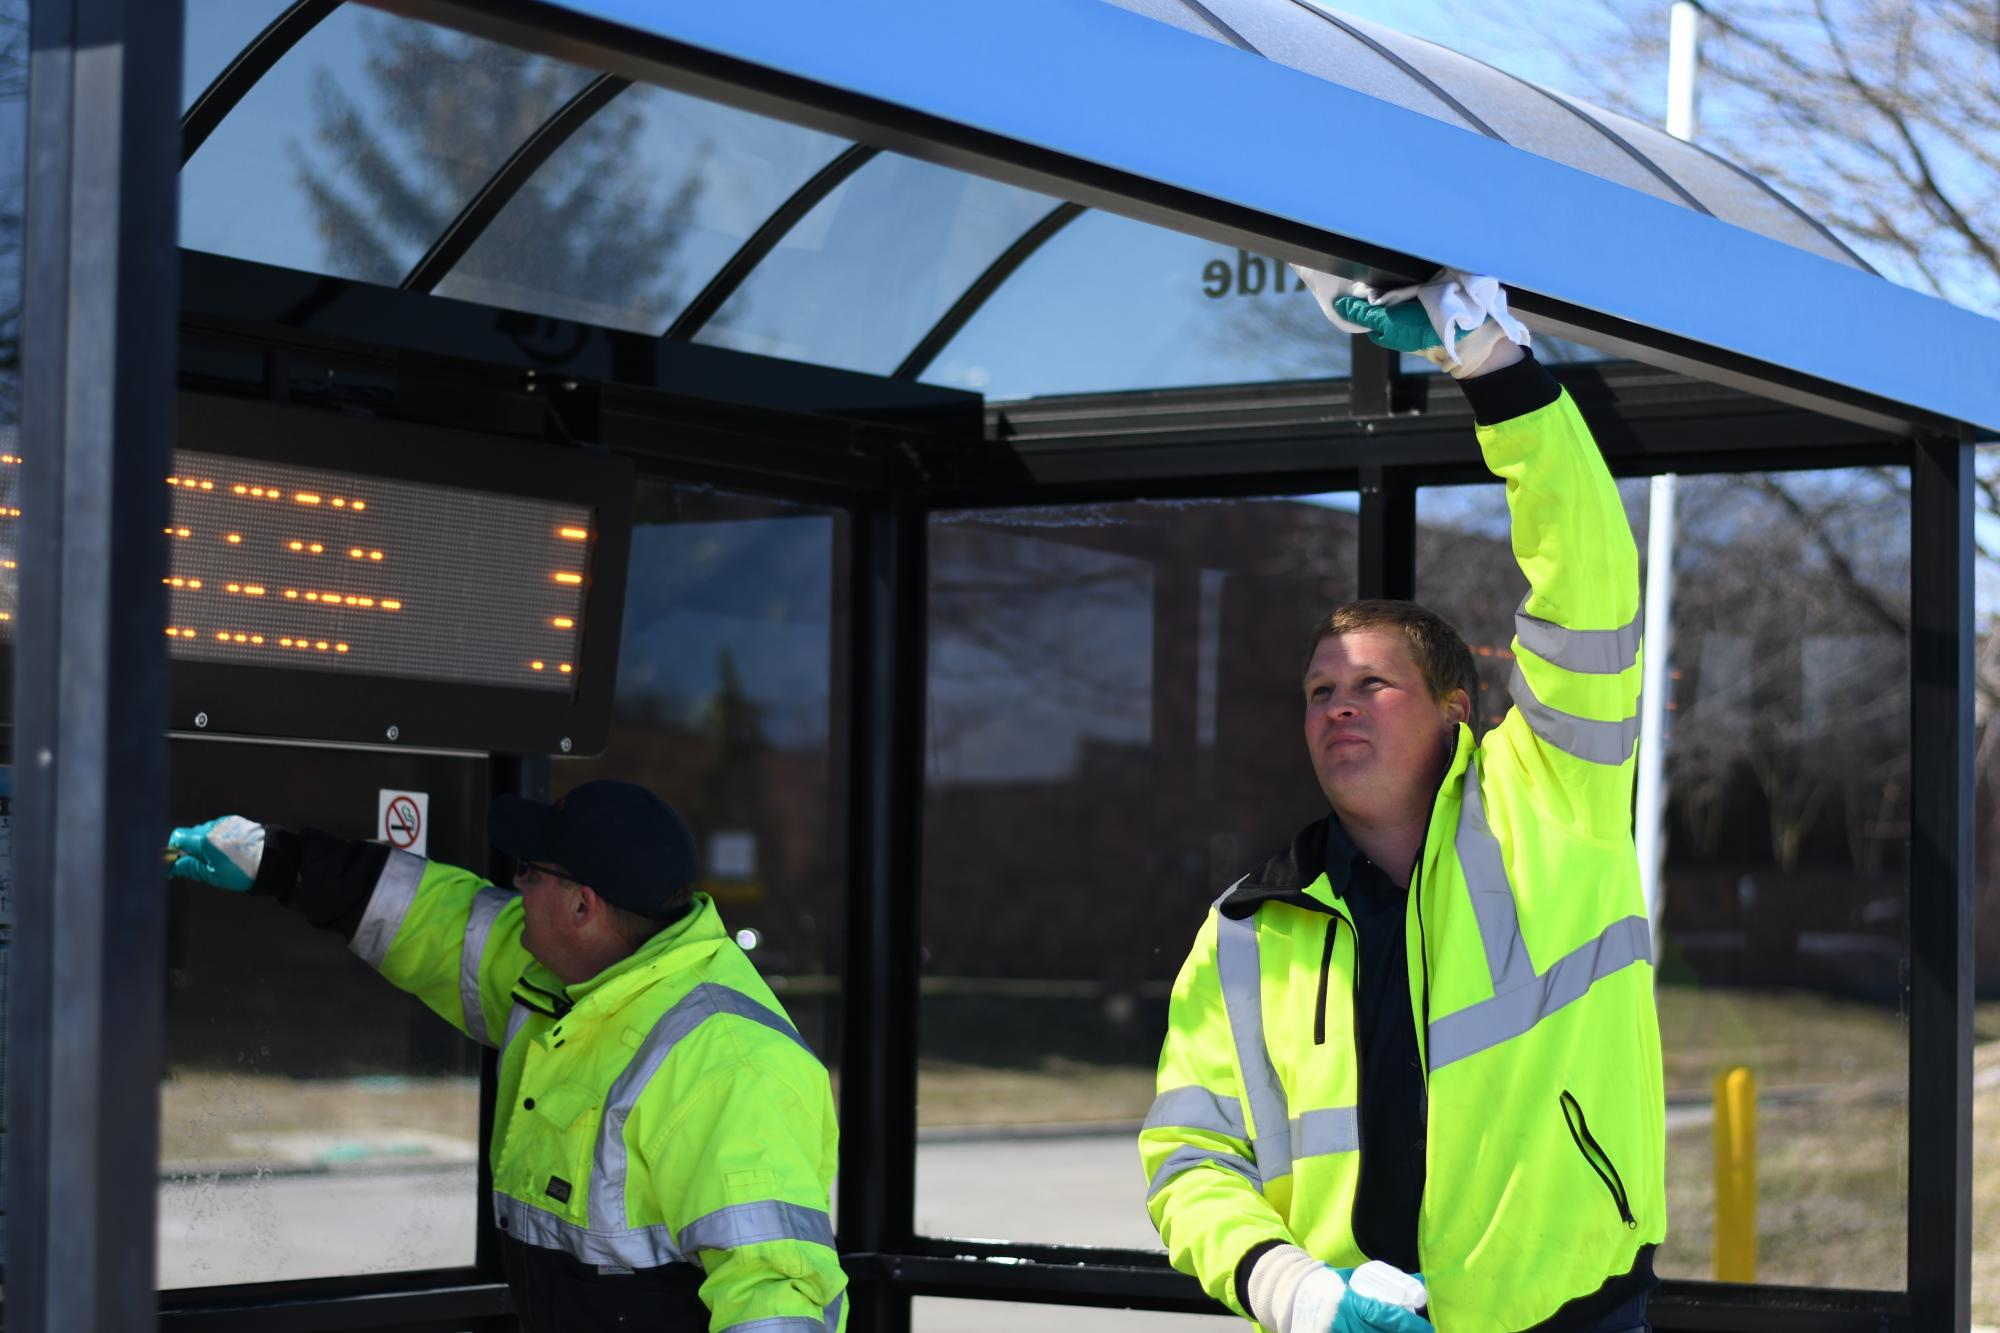 TheRide Facilities team cleans a bus shelter